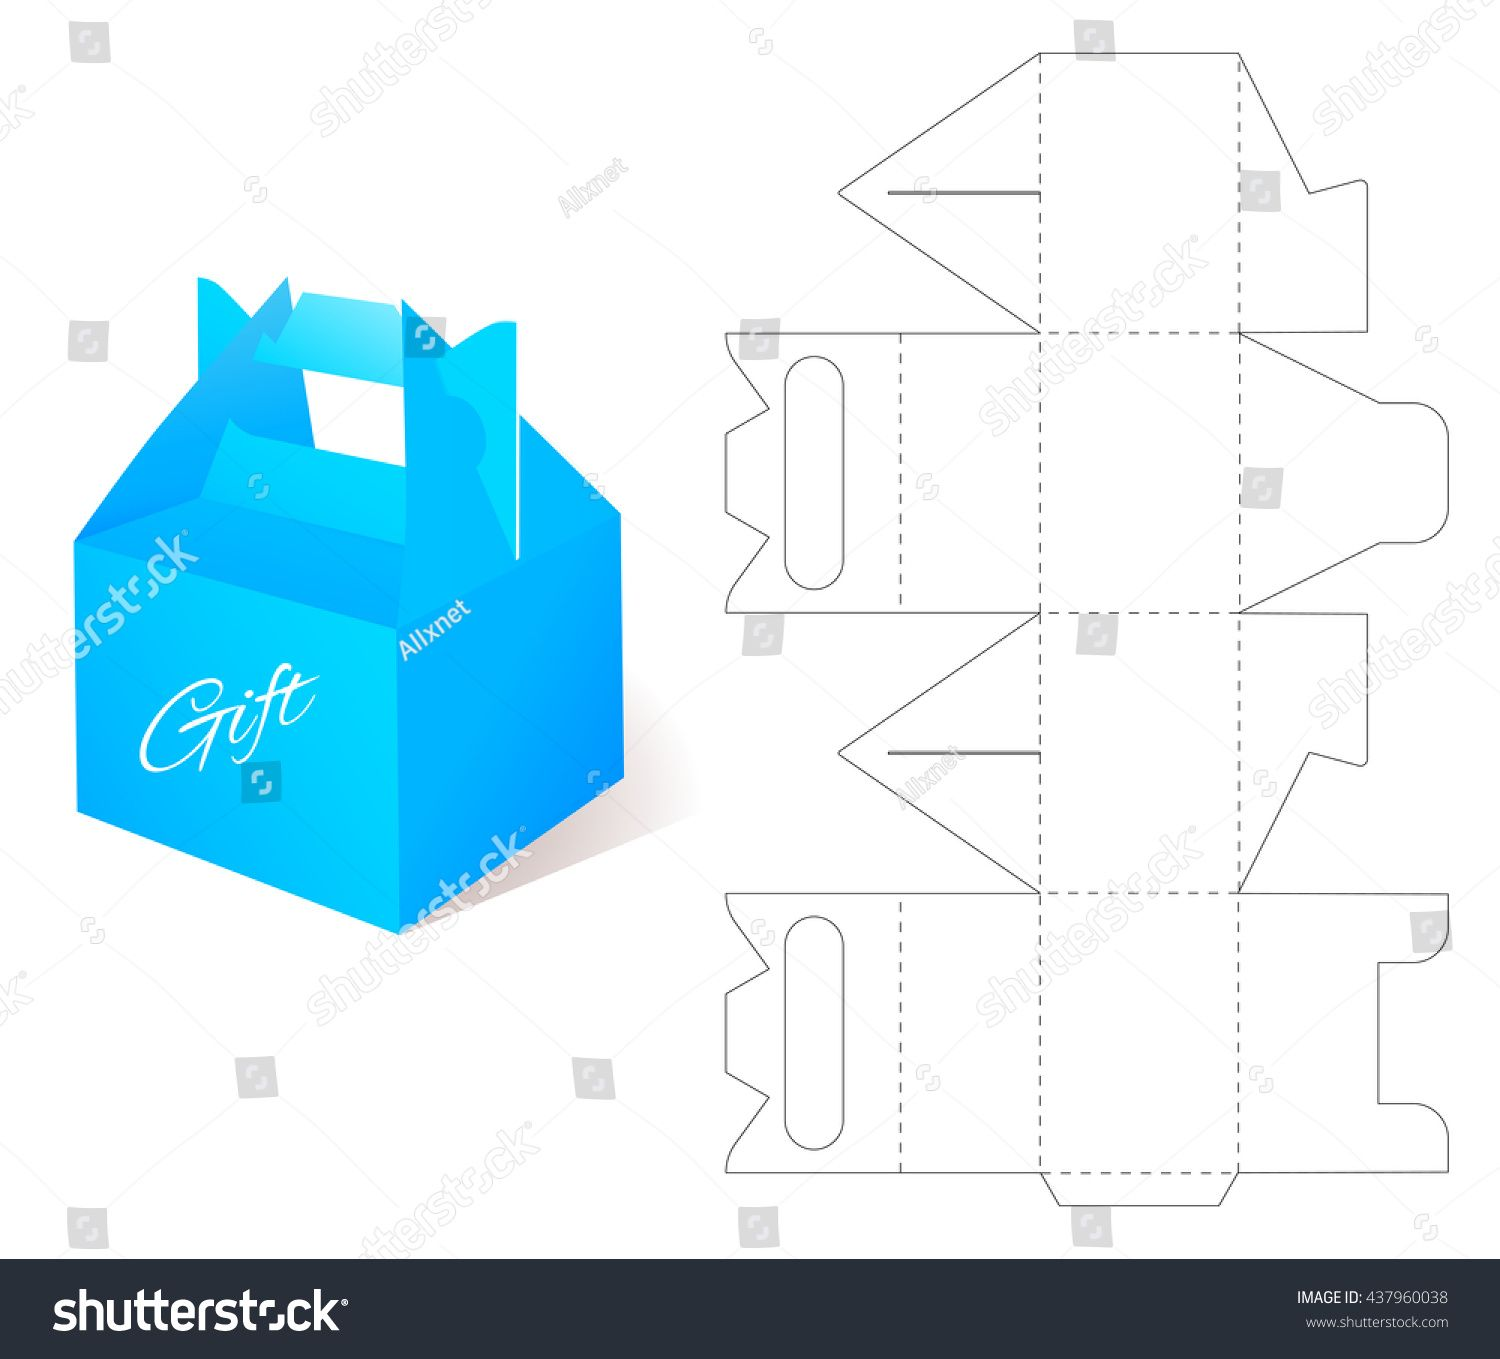 Gift Blueprint Box Template Craft Mockup Retail Cardboard With Cut Pattern Line